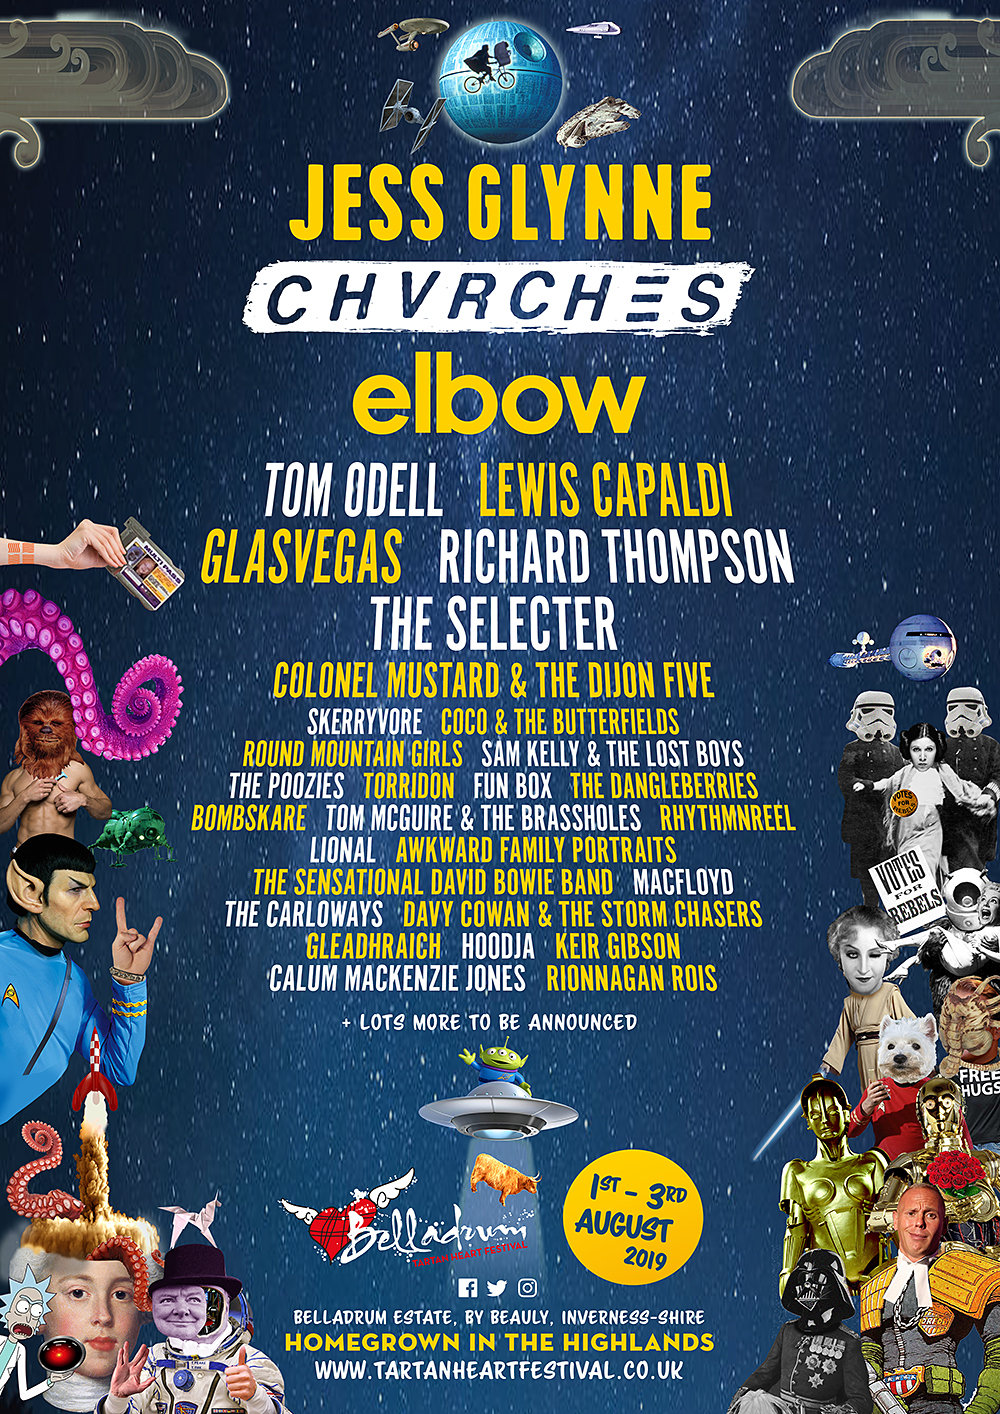 JESS GLYNNE & CHVRCHES ANNOUNCED AS FINAL HEADLINERS FOR BELLADRUM